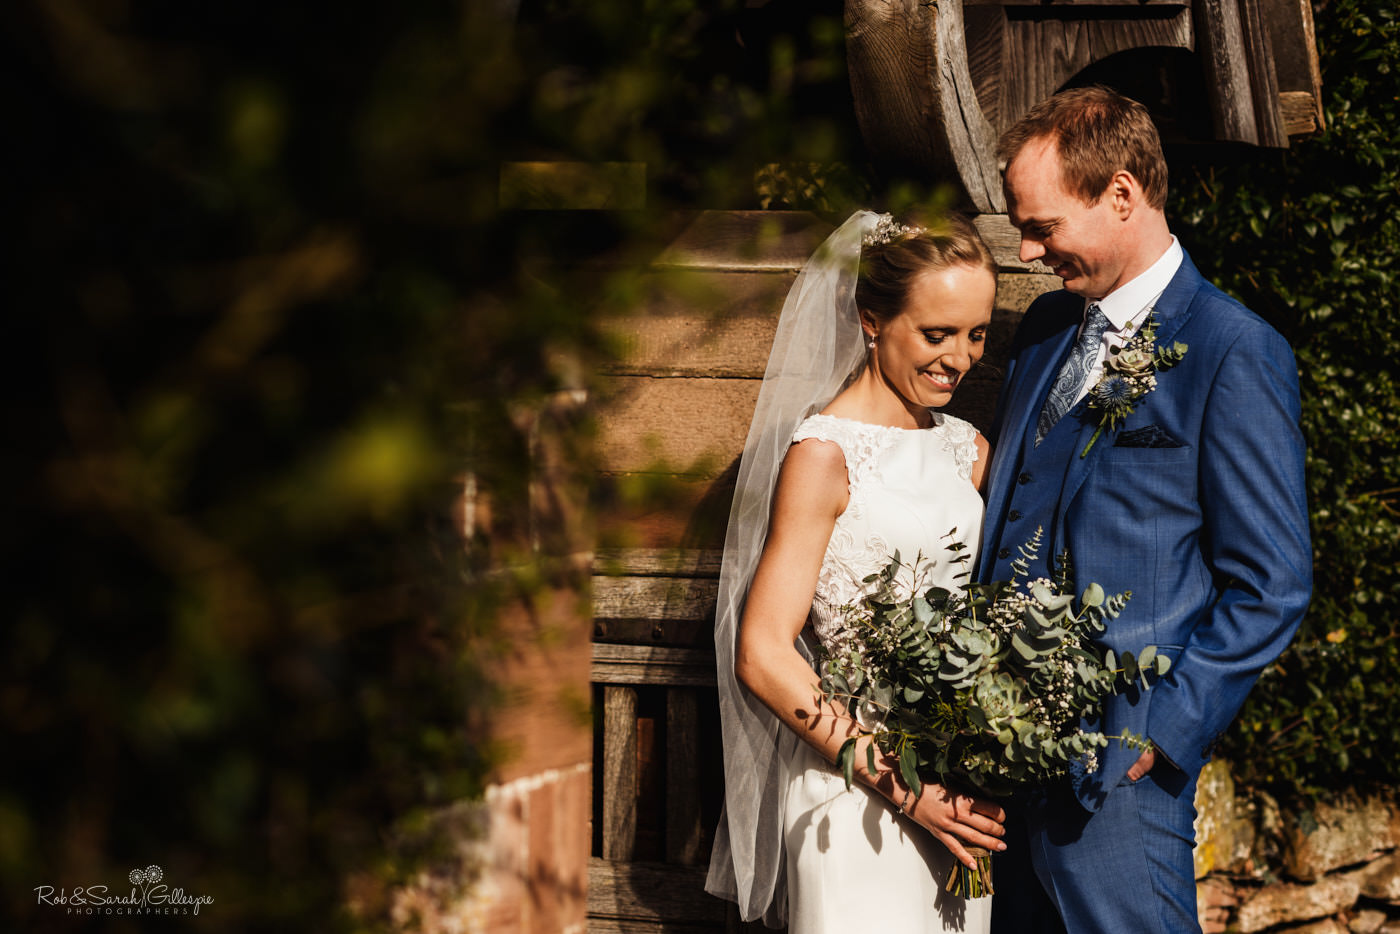 Bride and groom together at St Kenelm's church in Romsley